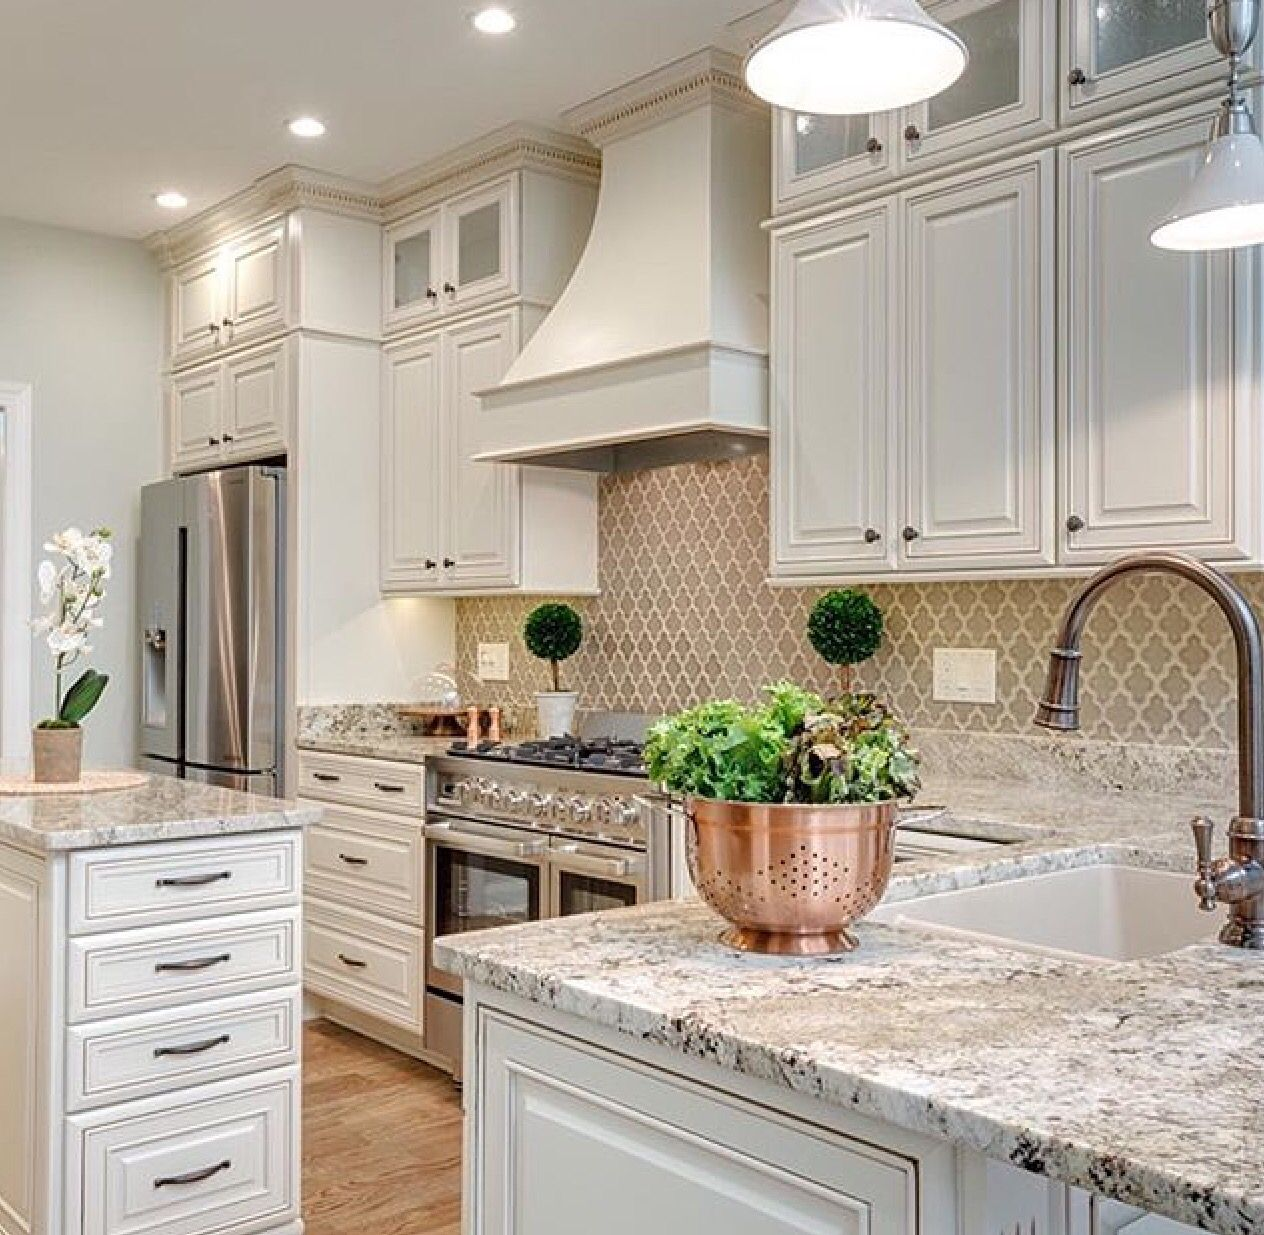 Lovely A Neutral Colored Kitchen Looks Clean And Fresh. The Patterned Backsplash  Doesnt Overpower The Room